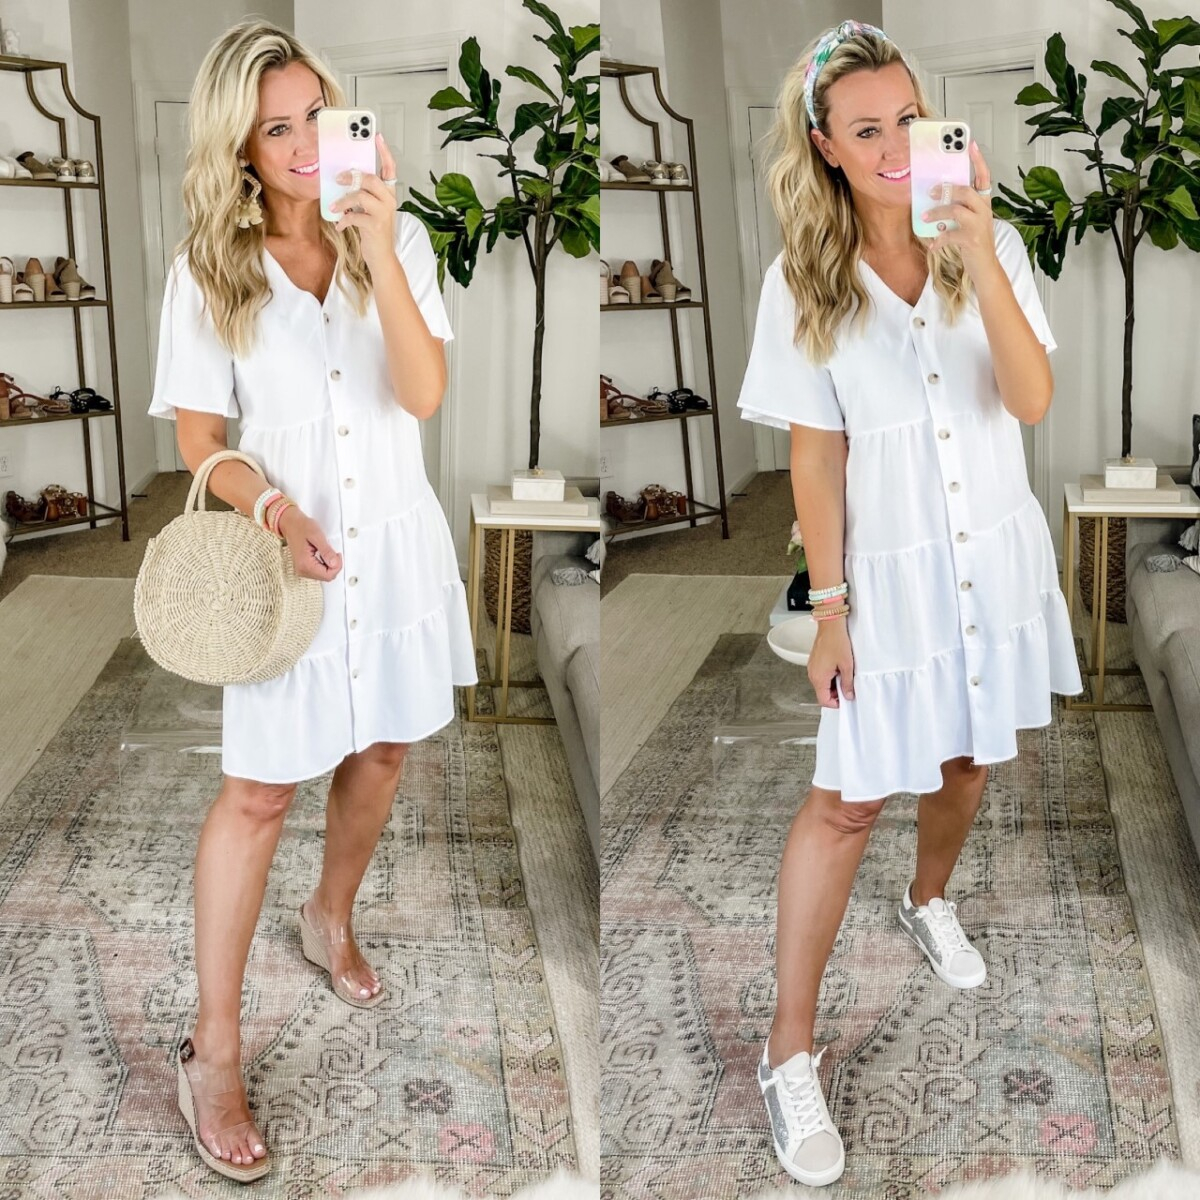 amazon summer dress | Amazon Prime Day by popular Houston fashion blog, Haute and Humid: collage image of a woman wearing a white button front mini dress, white sneakers, clear strap platform espadrilles, knot headband, raffia statement earrings, and holding a woven circular handbag.